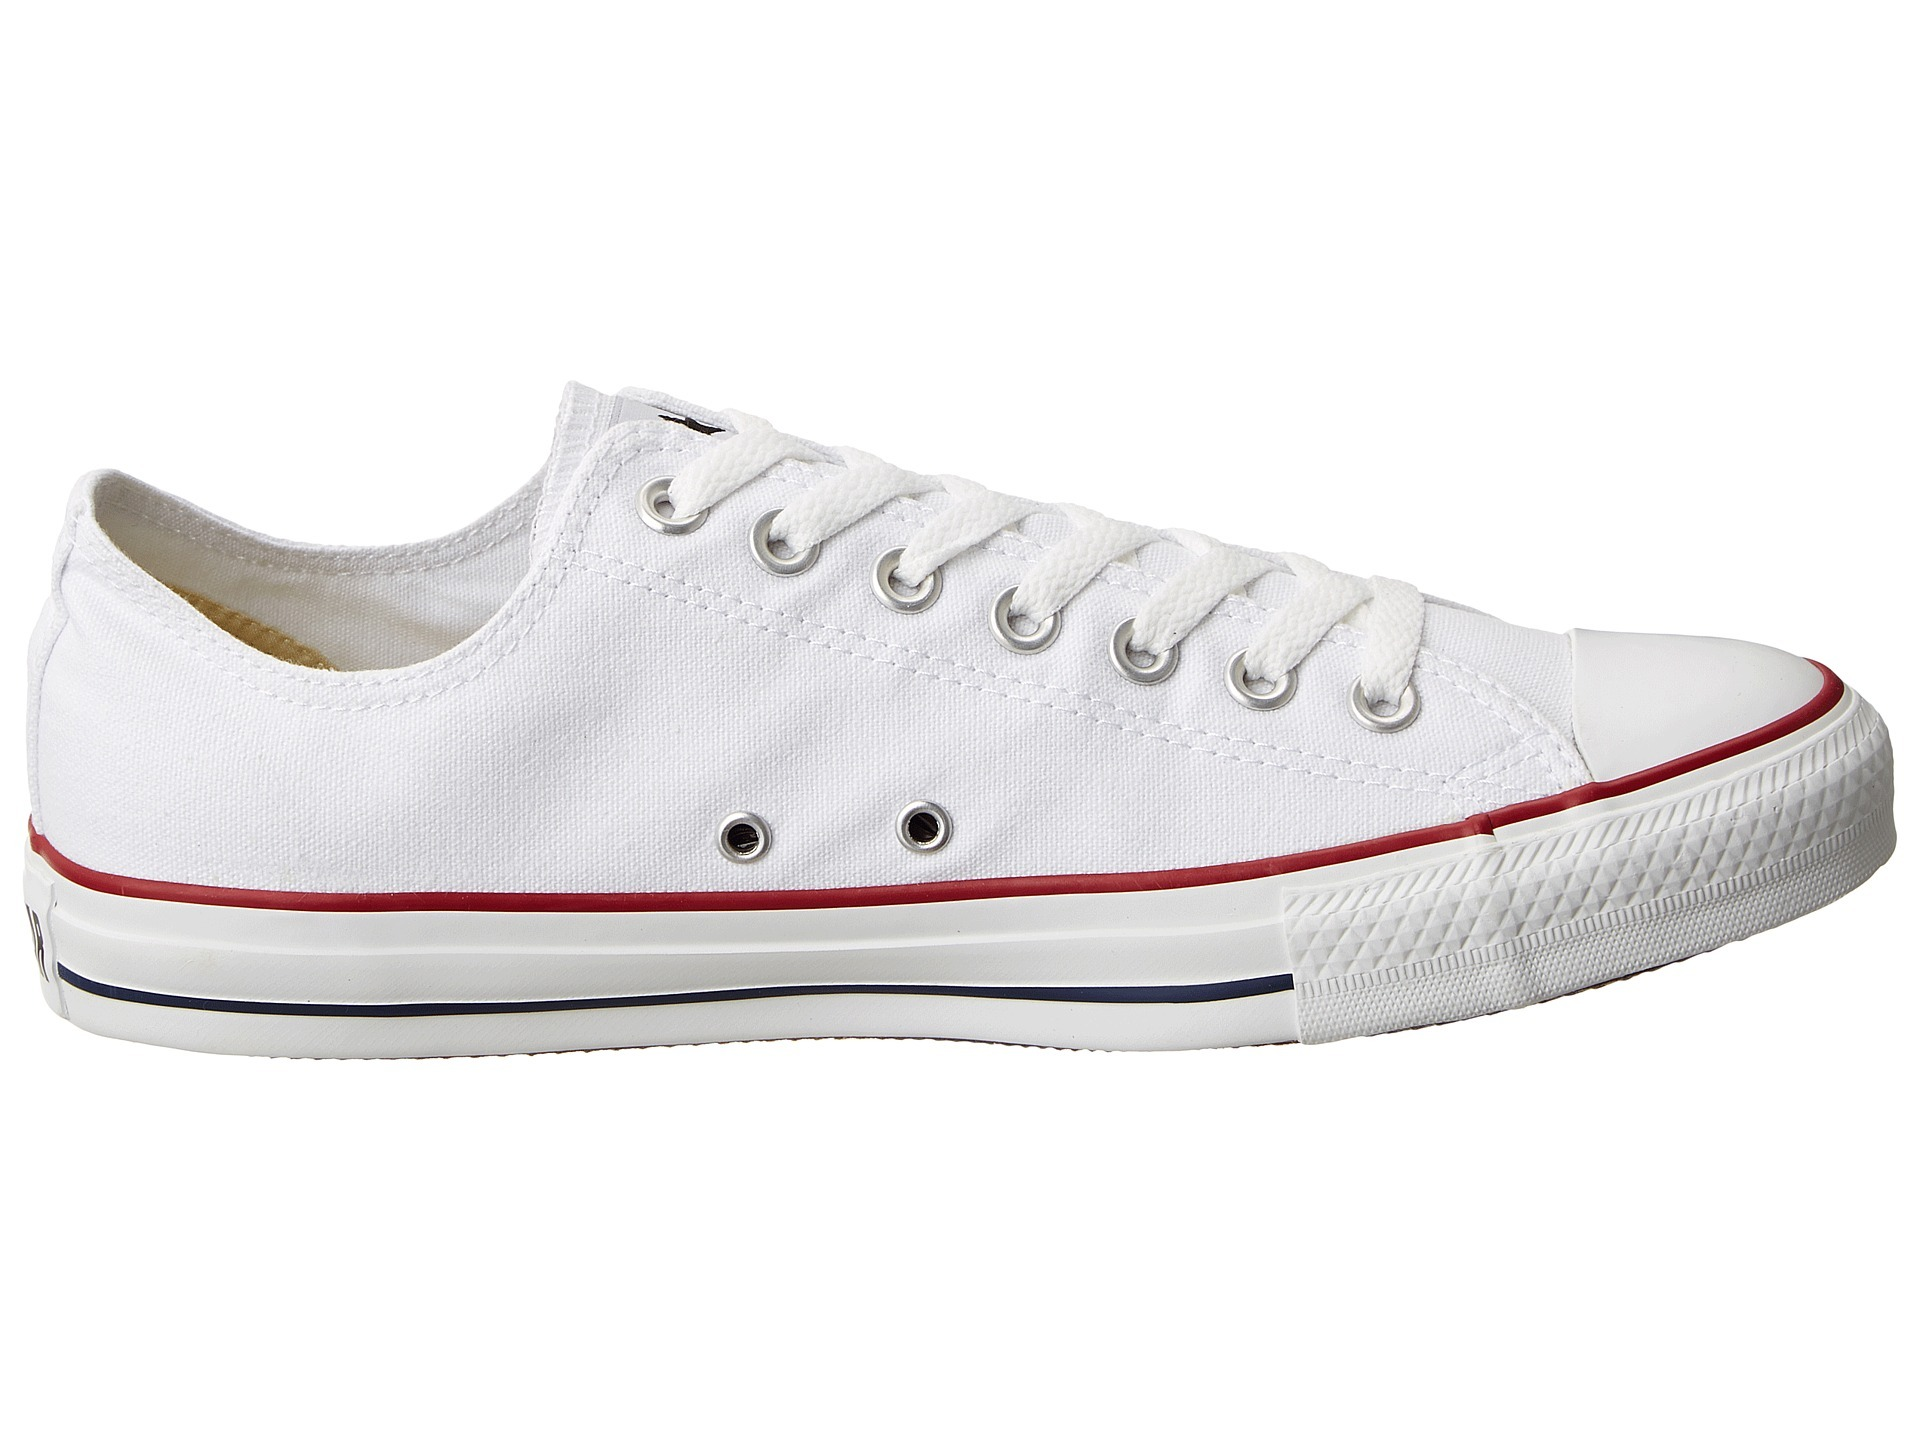 ee821ac65b3a Converse Children s Chuck Taylor All Star Ox - Optical White